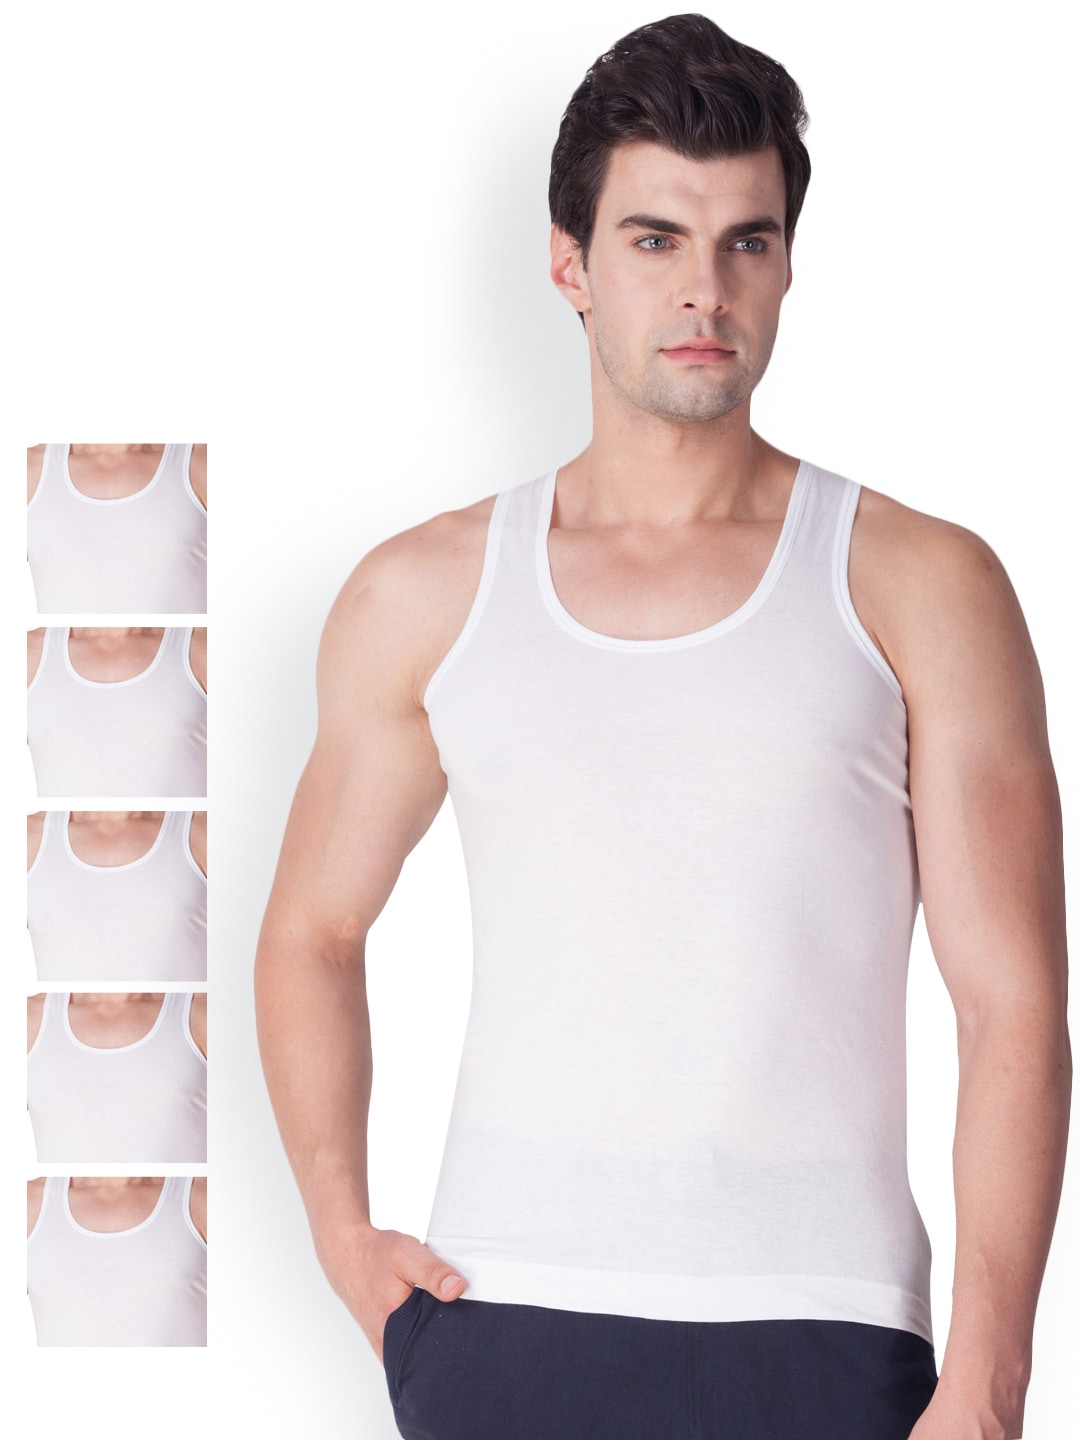 cd962606d292b Vests For Men - Buy Mens Innerwear Vests Online - Myntra